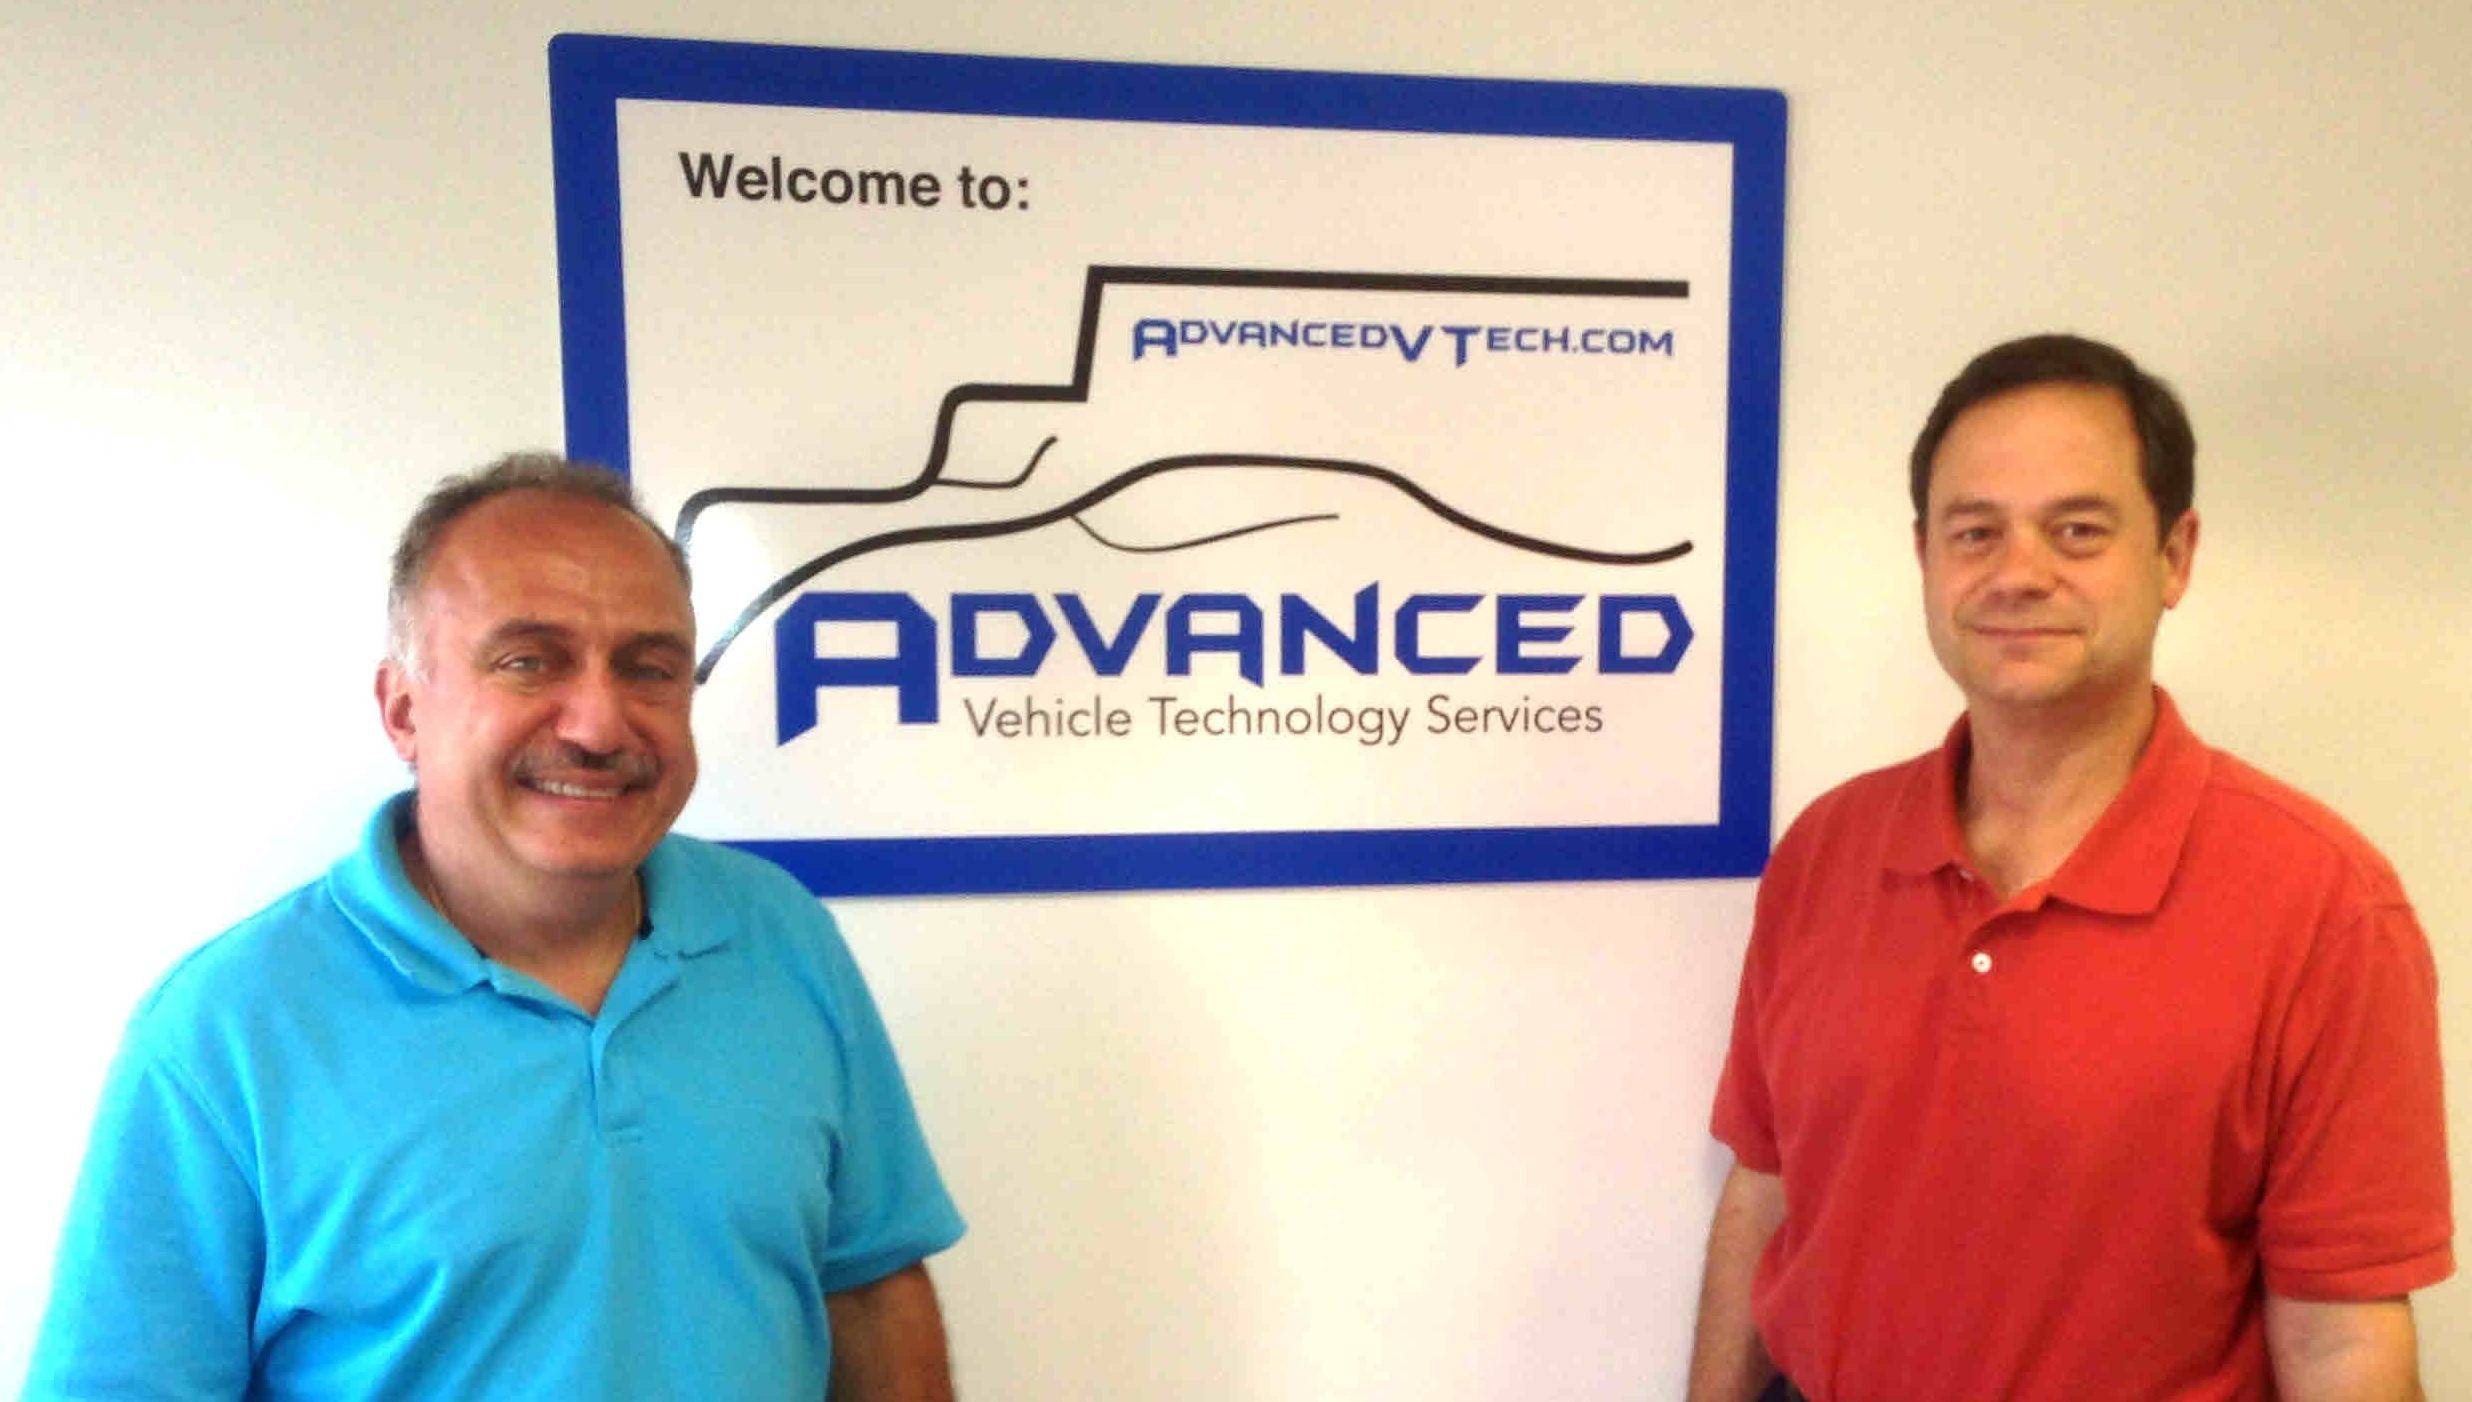 David Hagopian, vice president of operations, left, and Ron Sheble, vice president of finance, head Advanced Vehicle Technology Services Inc. in Buffalo Grove.